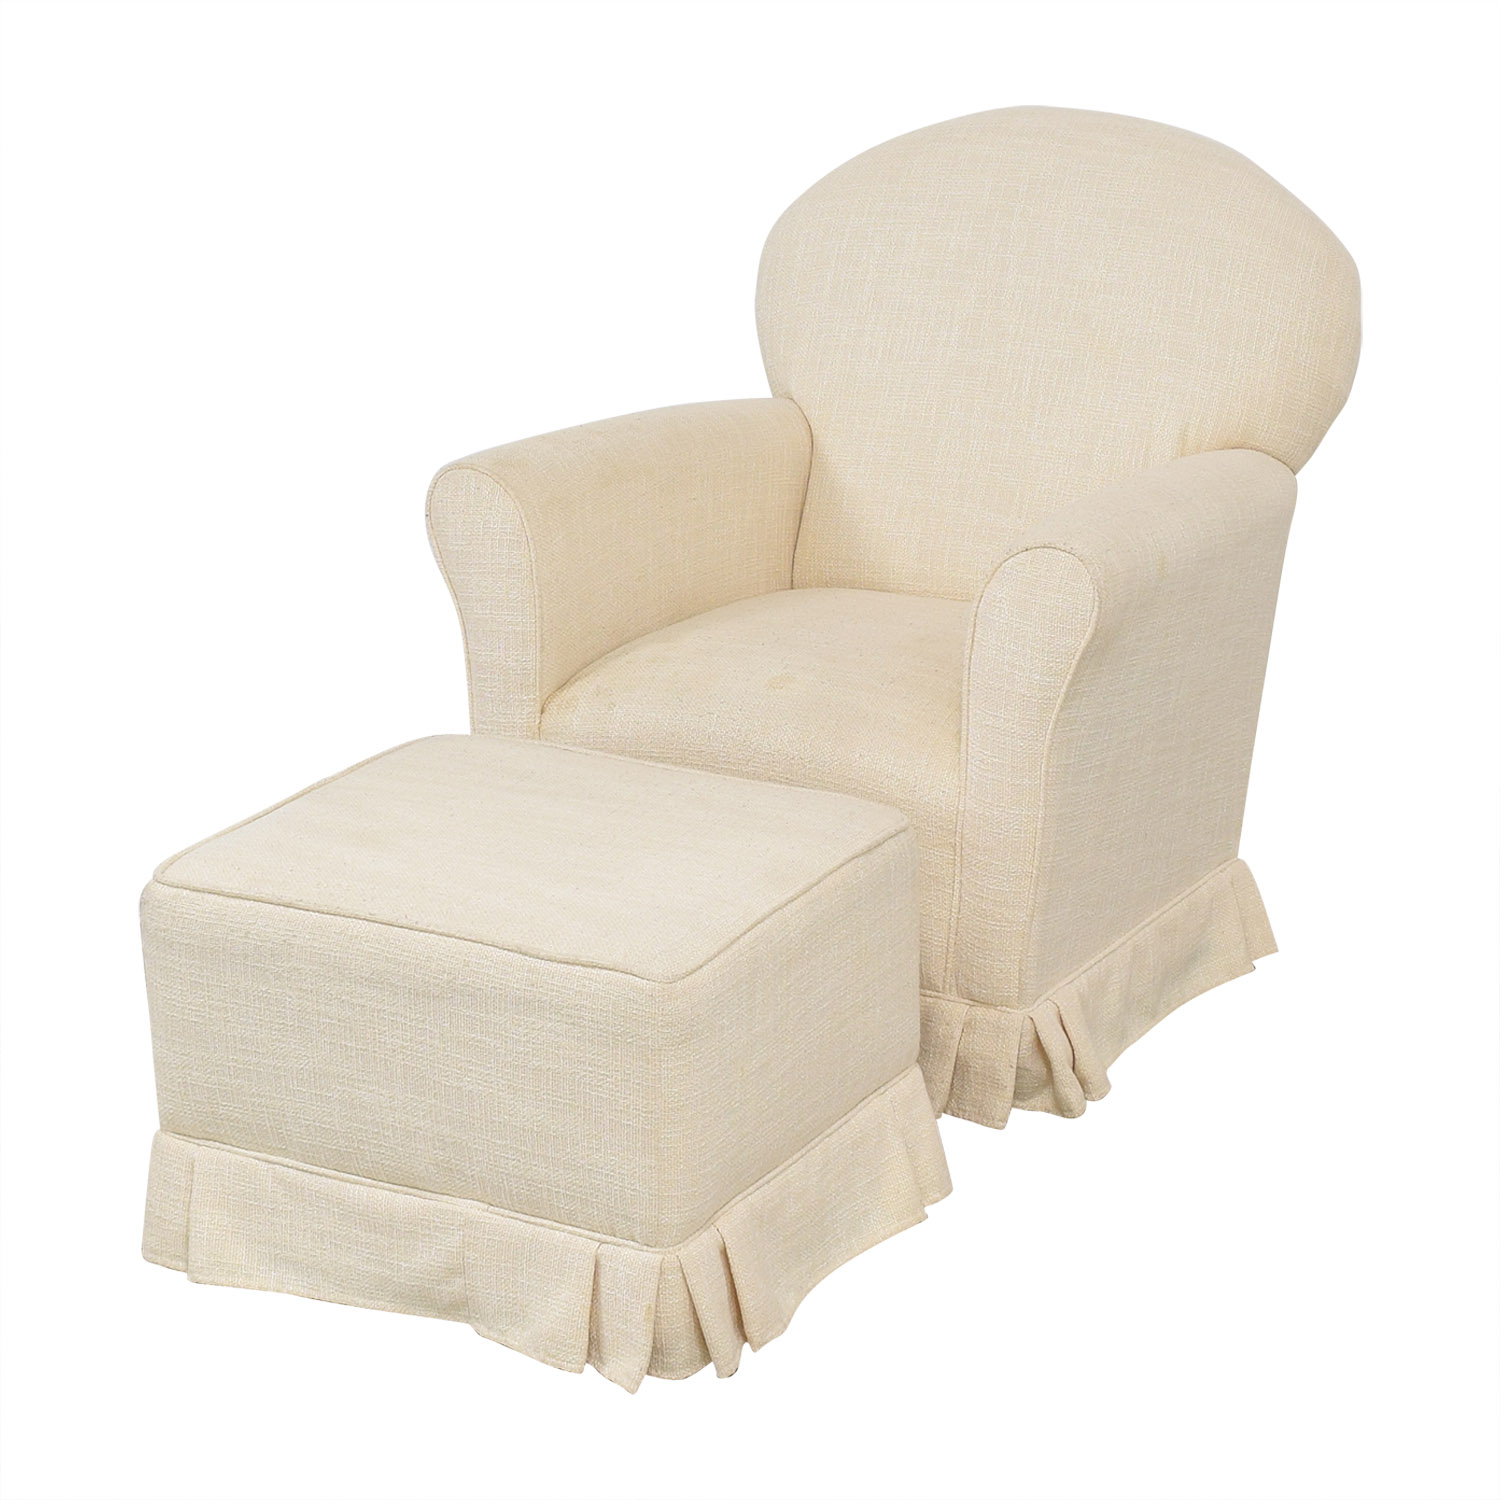 Little Castle Furniture Little Castle Furniture Glider Chair and Ottoman on sale